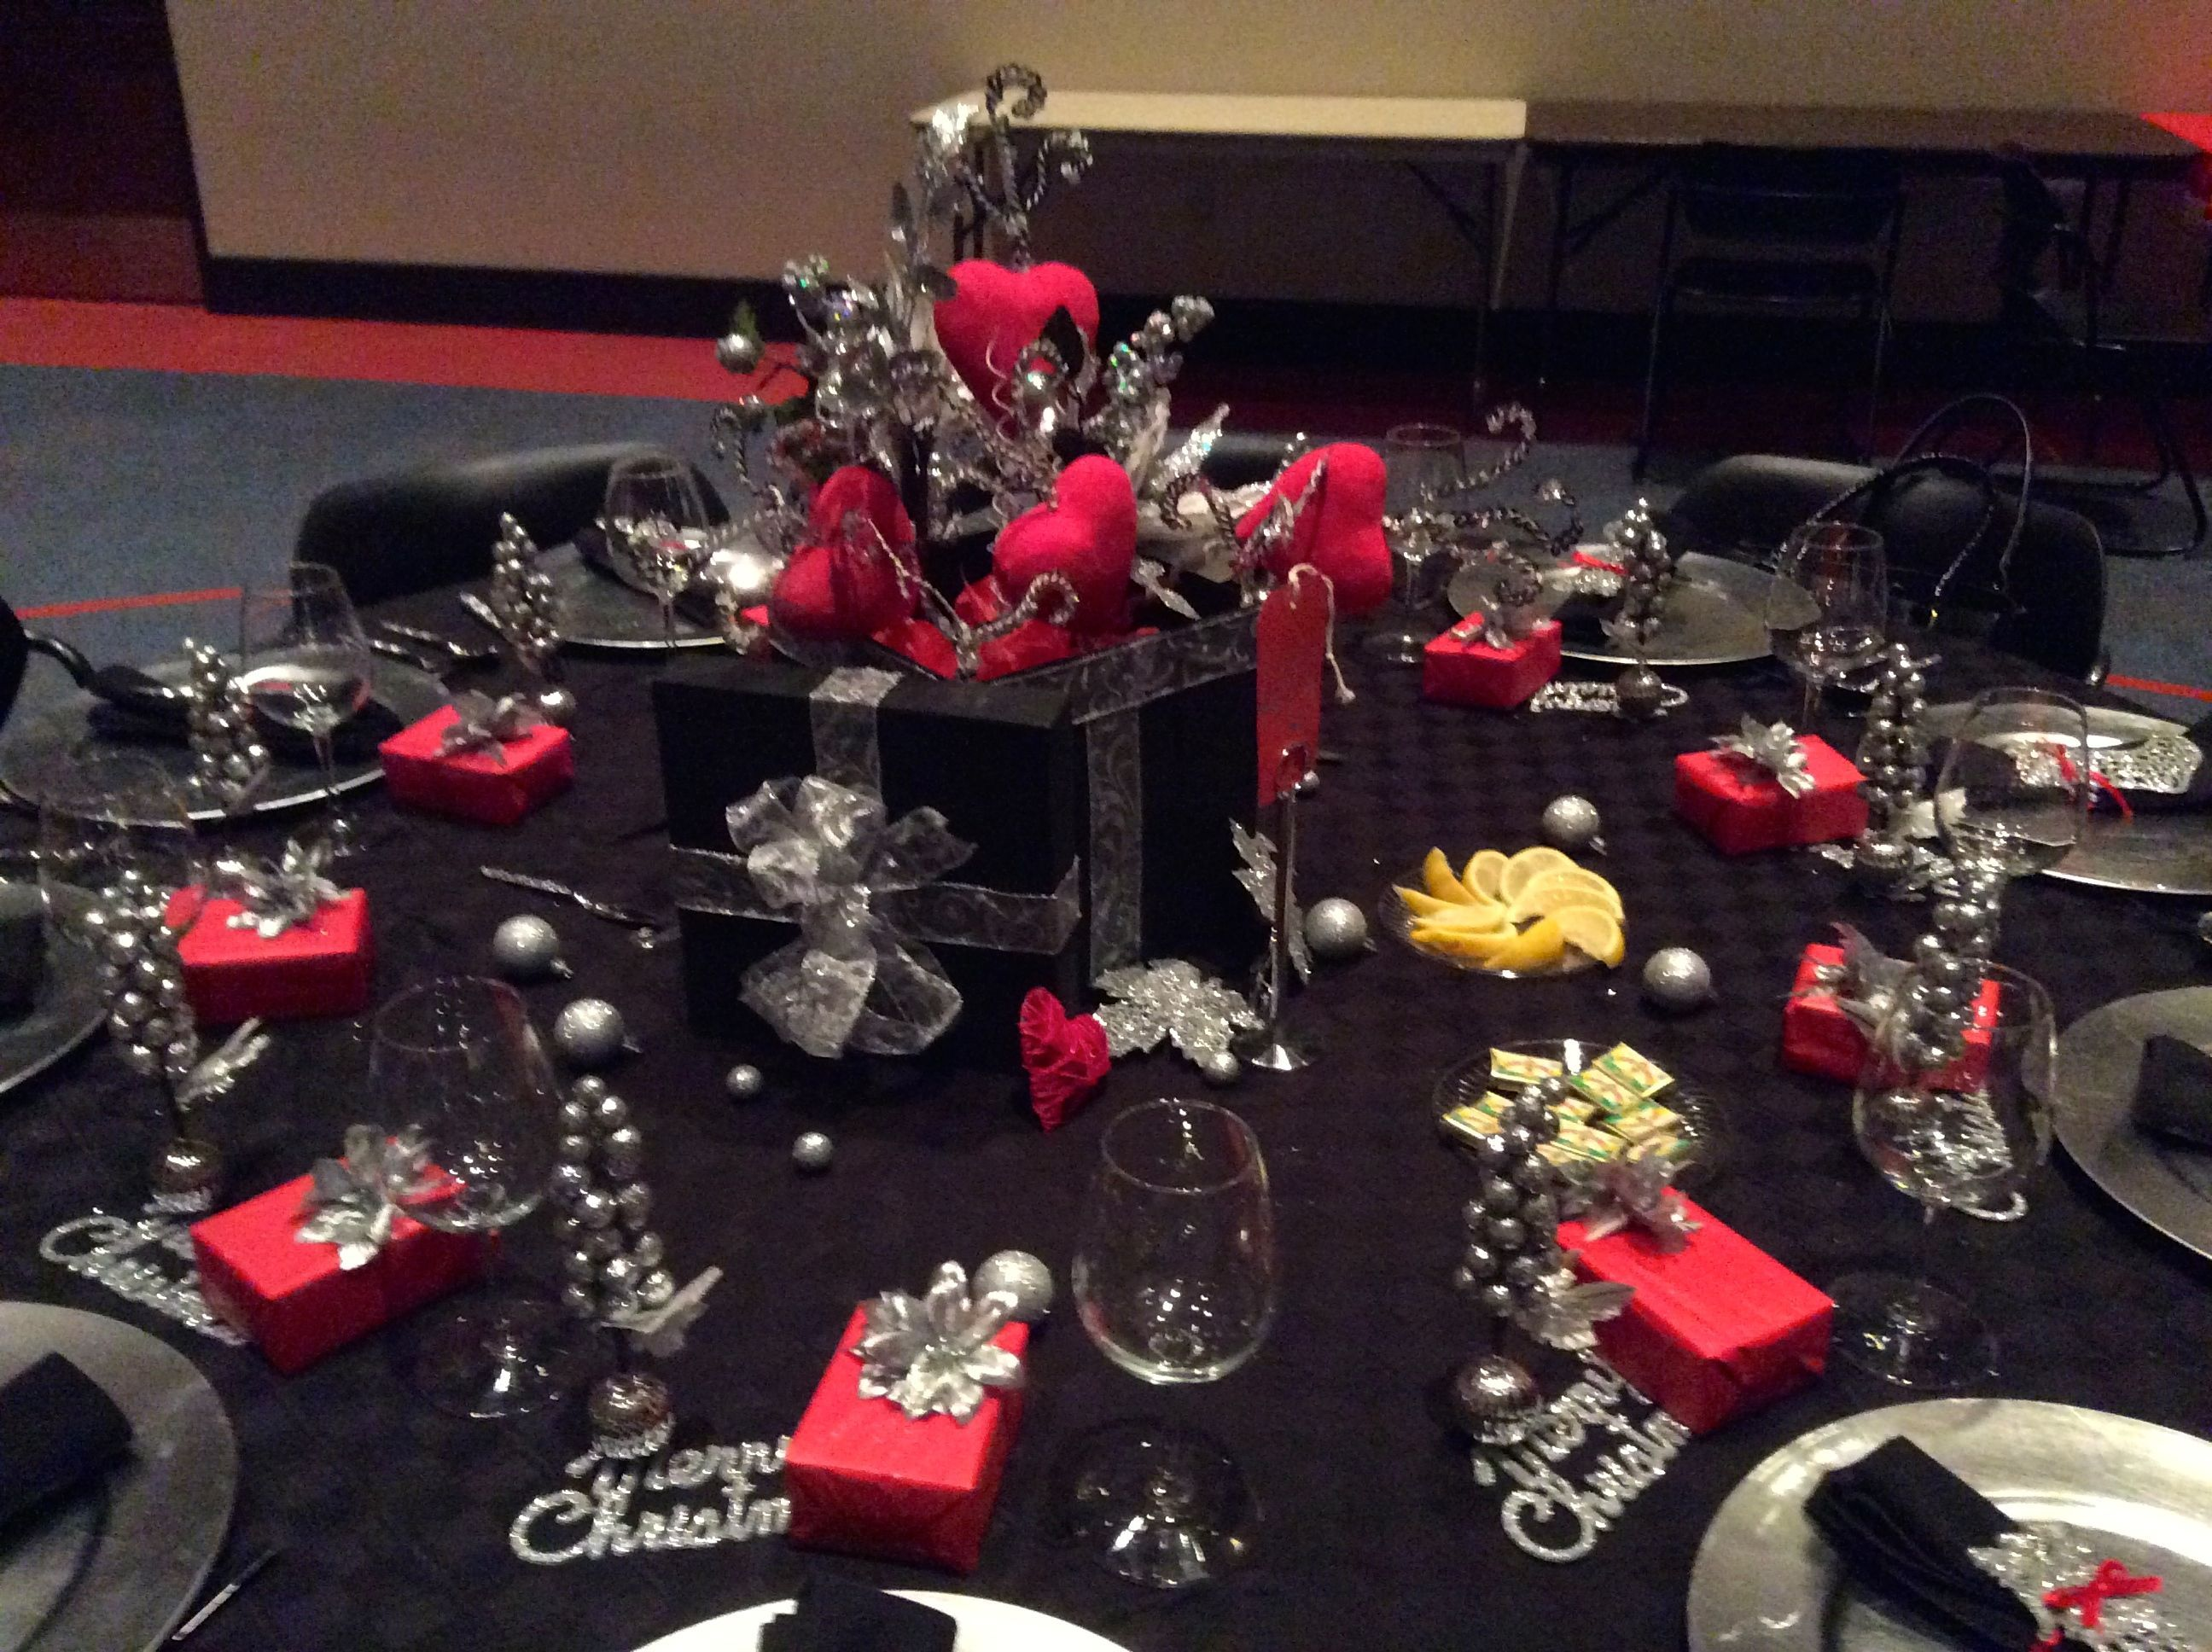 Decorations red black and white - Red Black White Tablechristmas Decorations Google Search